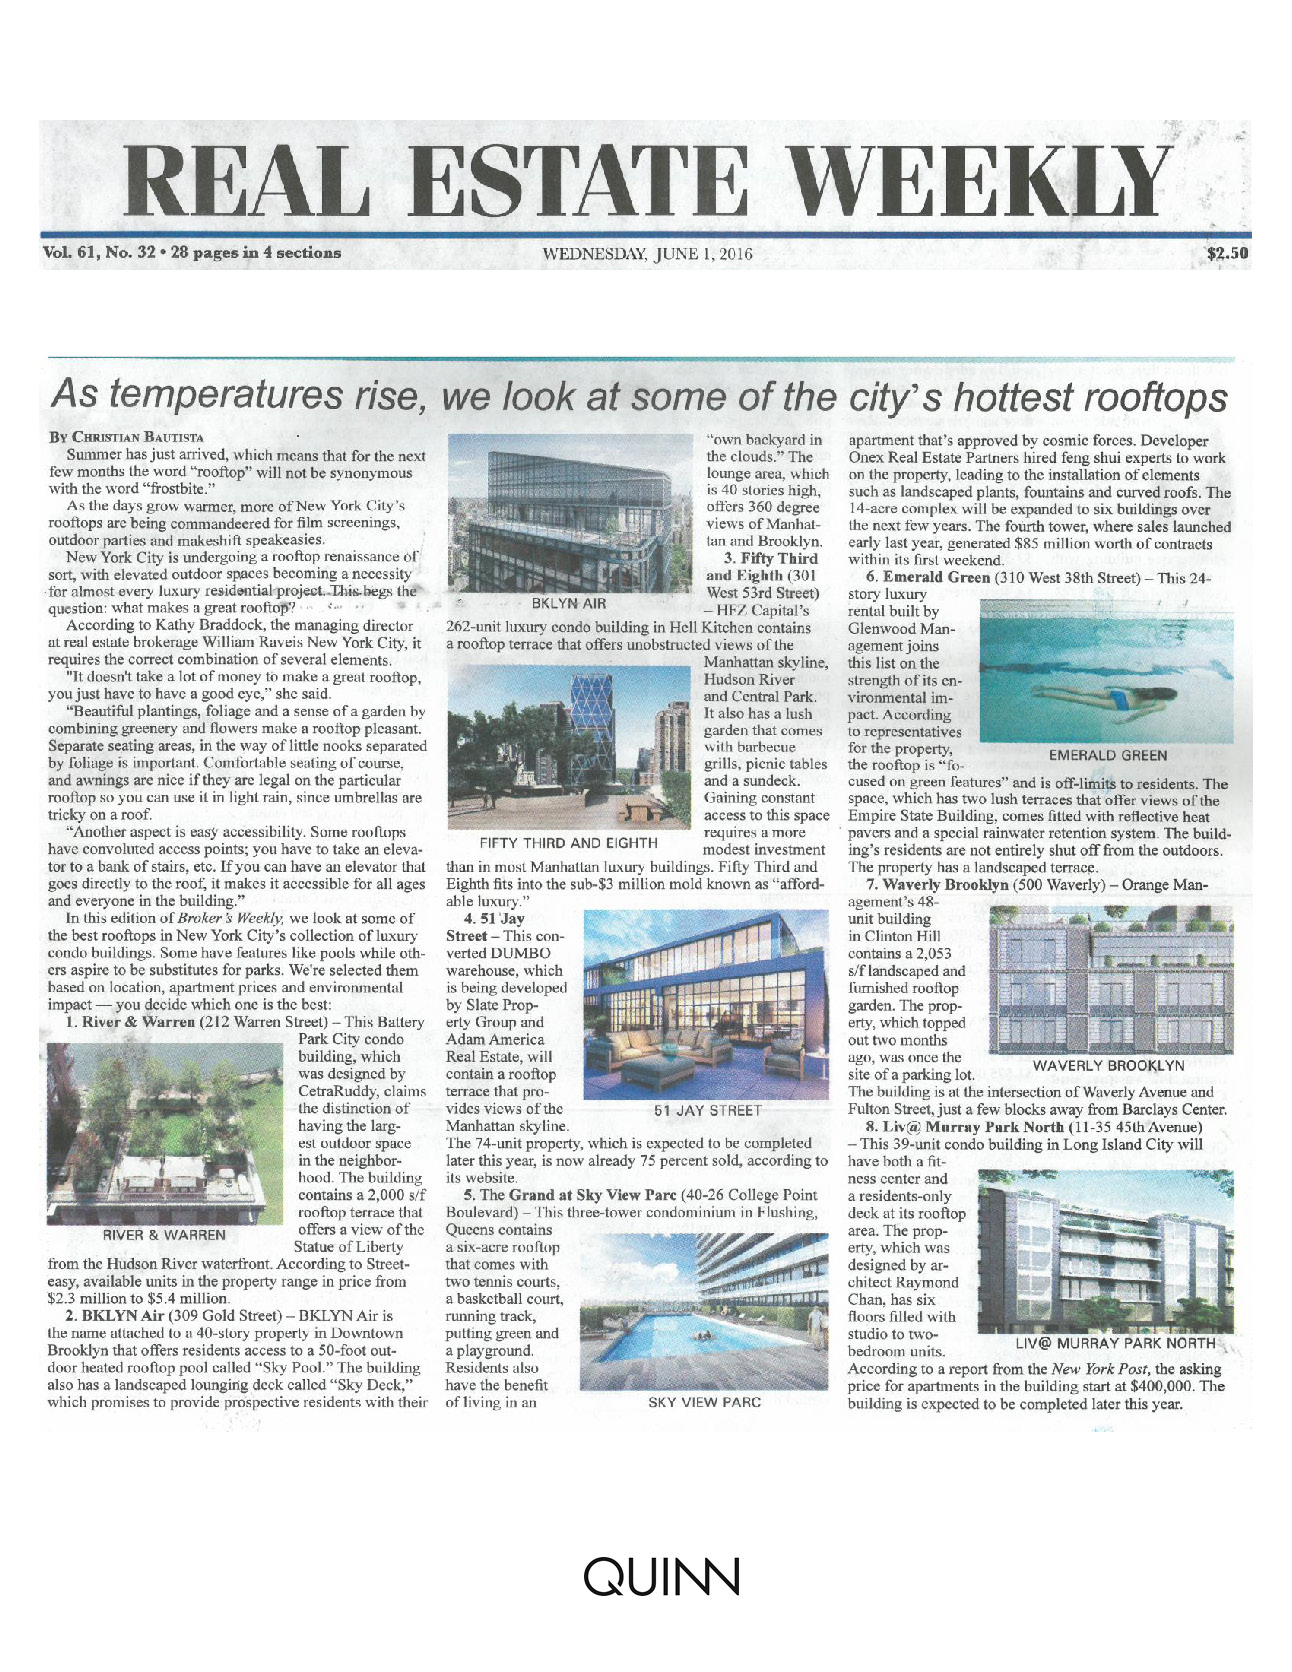 Real Estate Weekly - As temperatures rise, we look at some of the city's... (3)